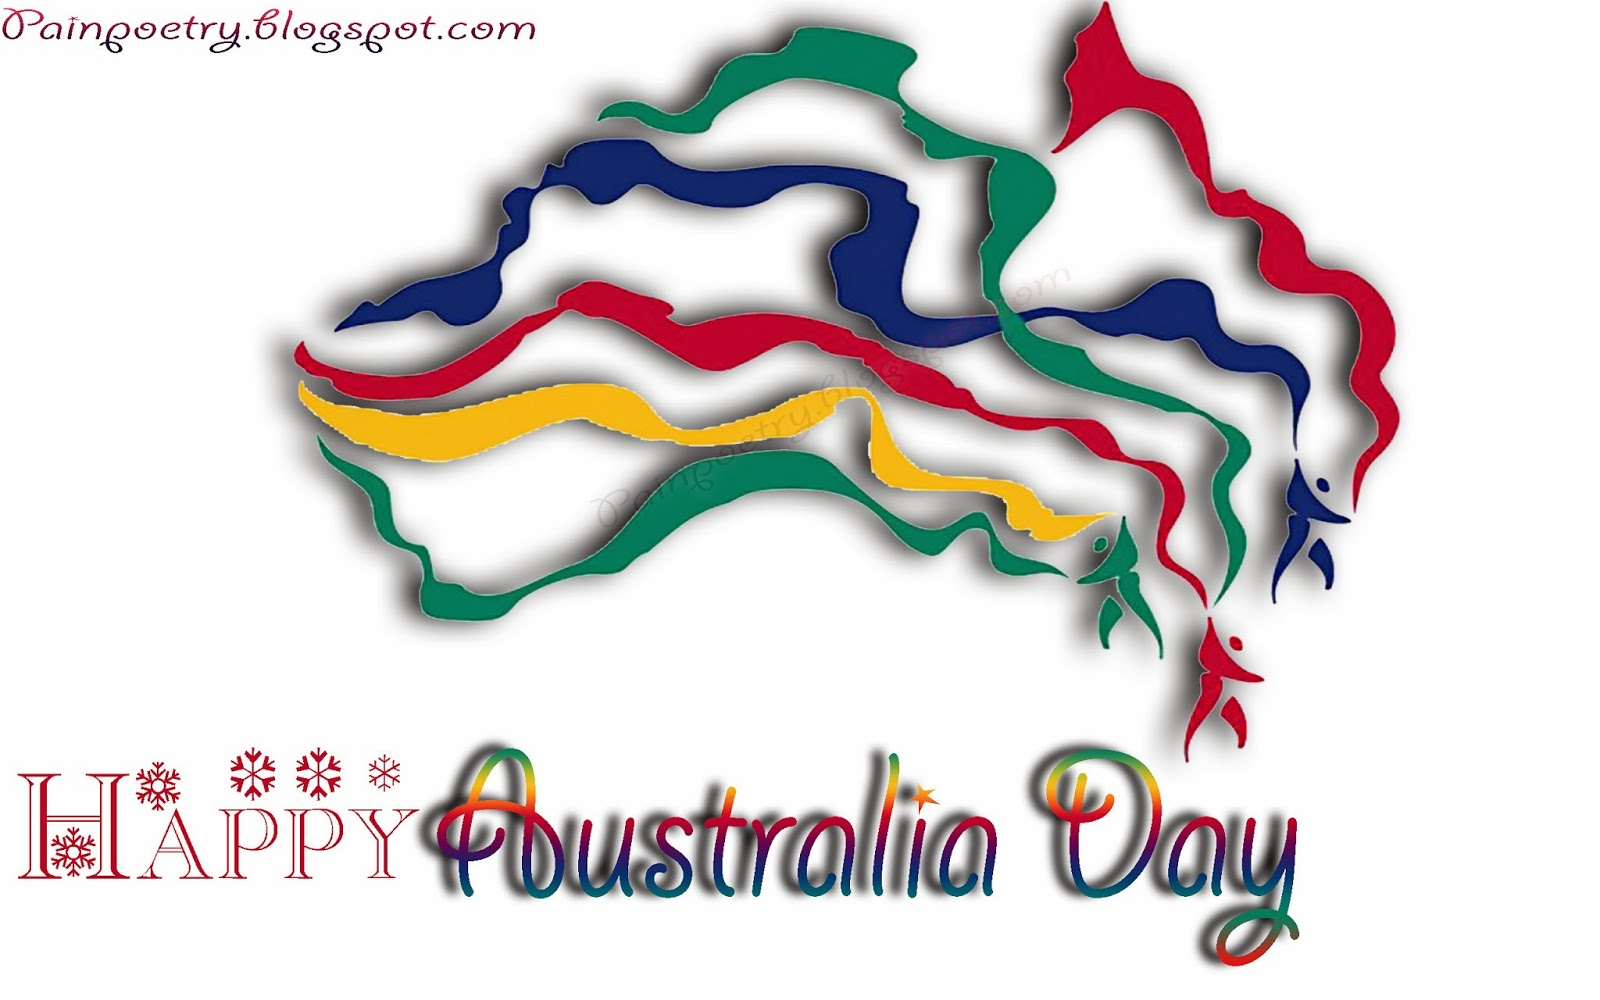 Happy-Australia-Day-Wishes-With-Map-Walpaper-Of-Australia-Map-Walpaper-HD